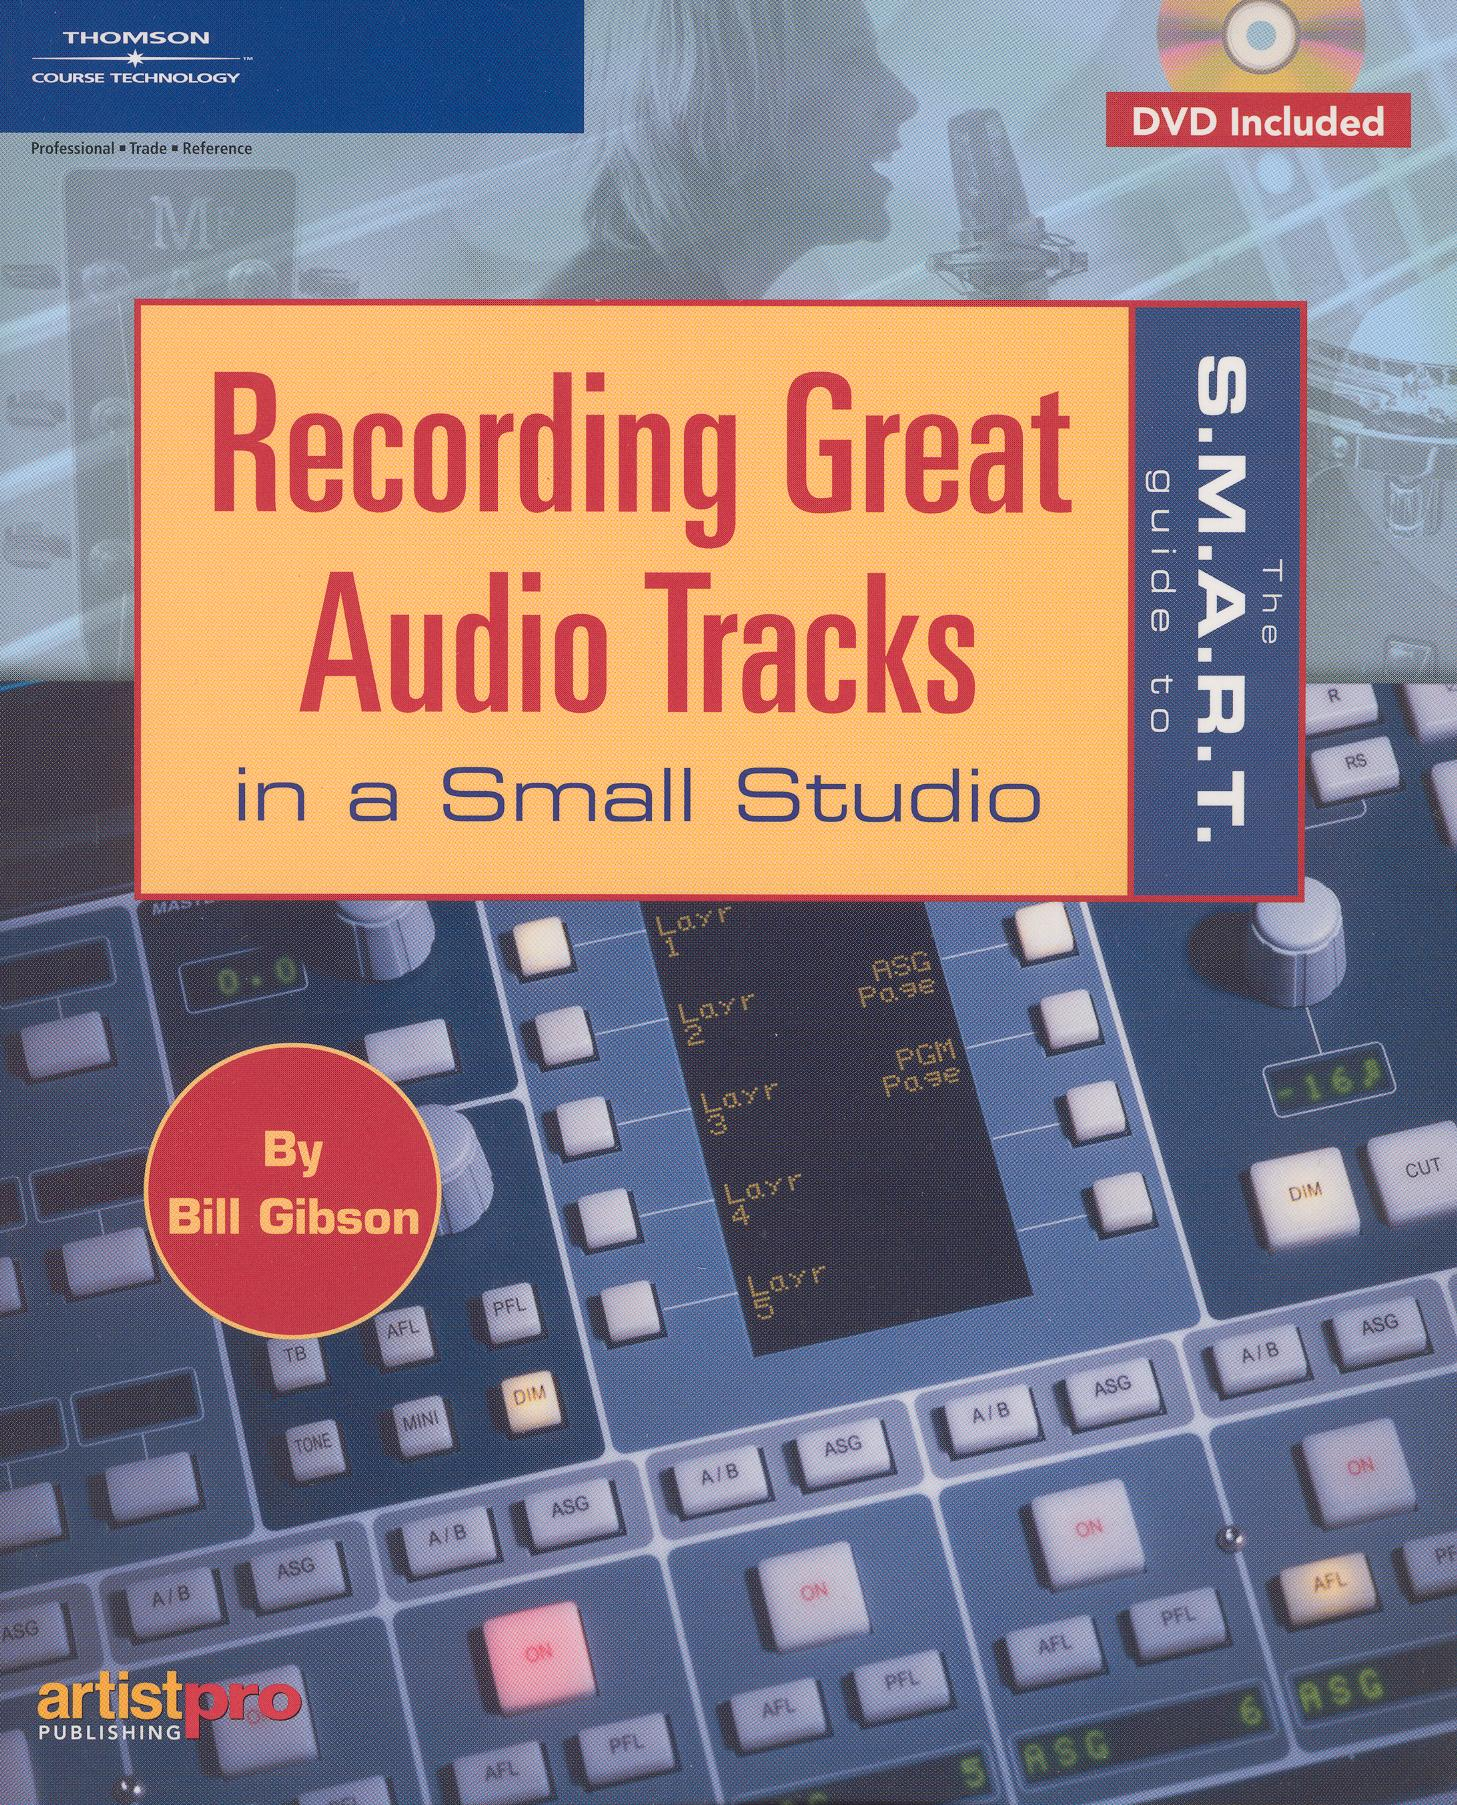 Smart Guide to Recording Great Audio Tracks in a Studio